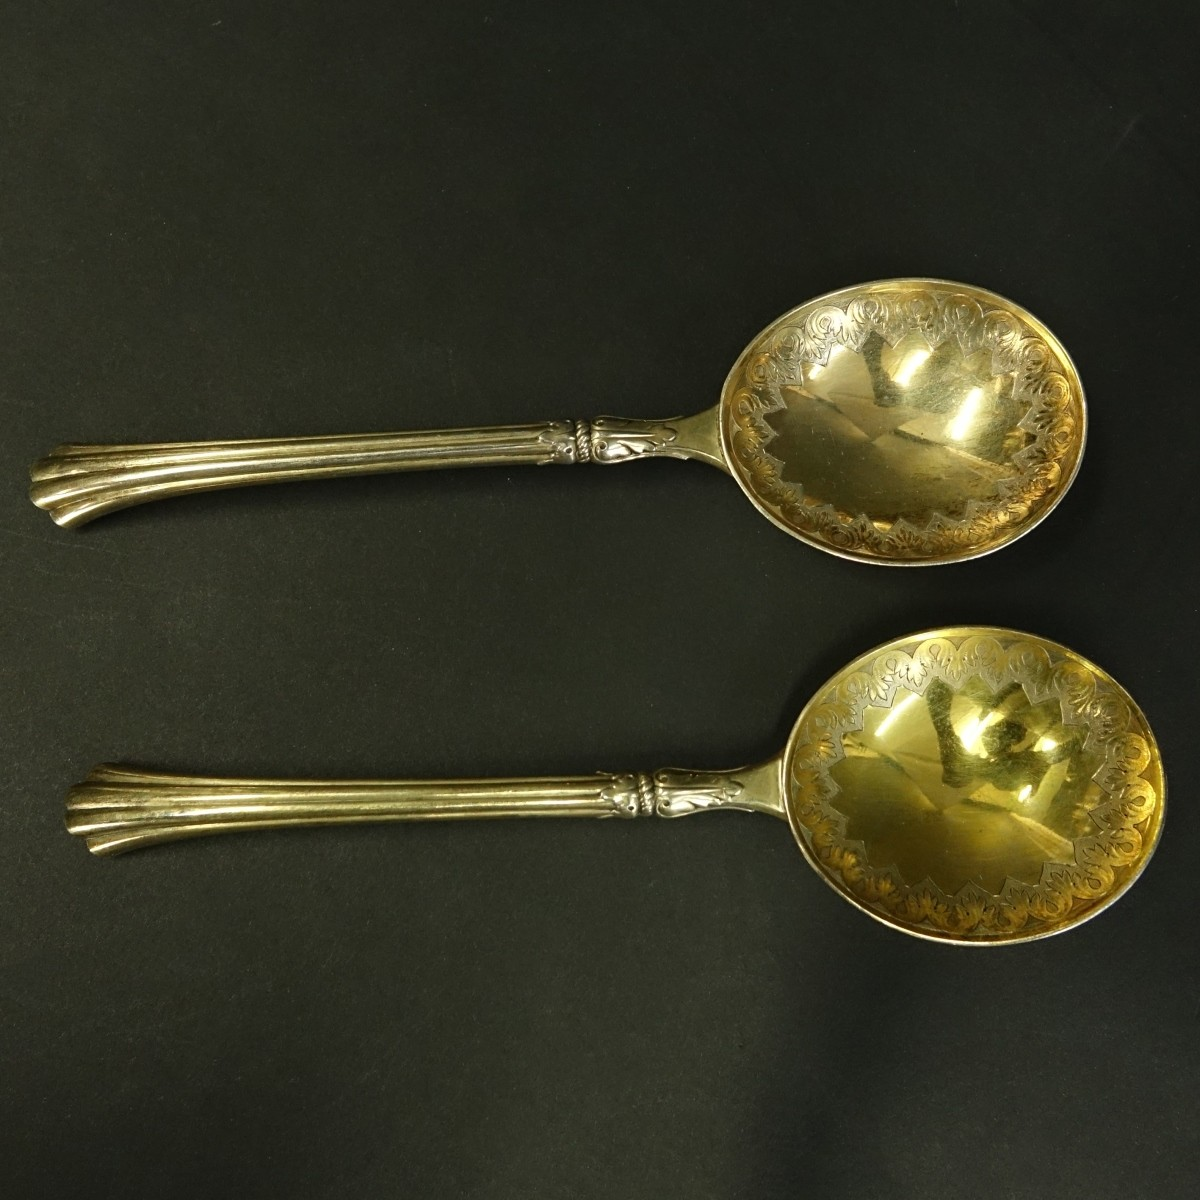 Circa 1883 London Sterling Spoons